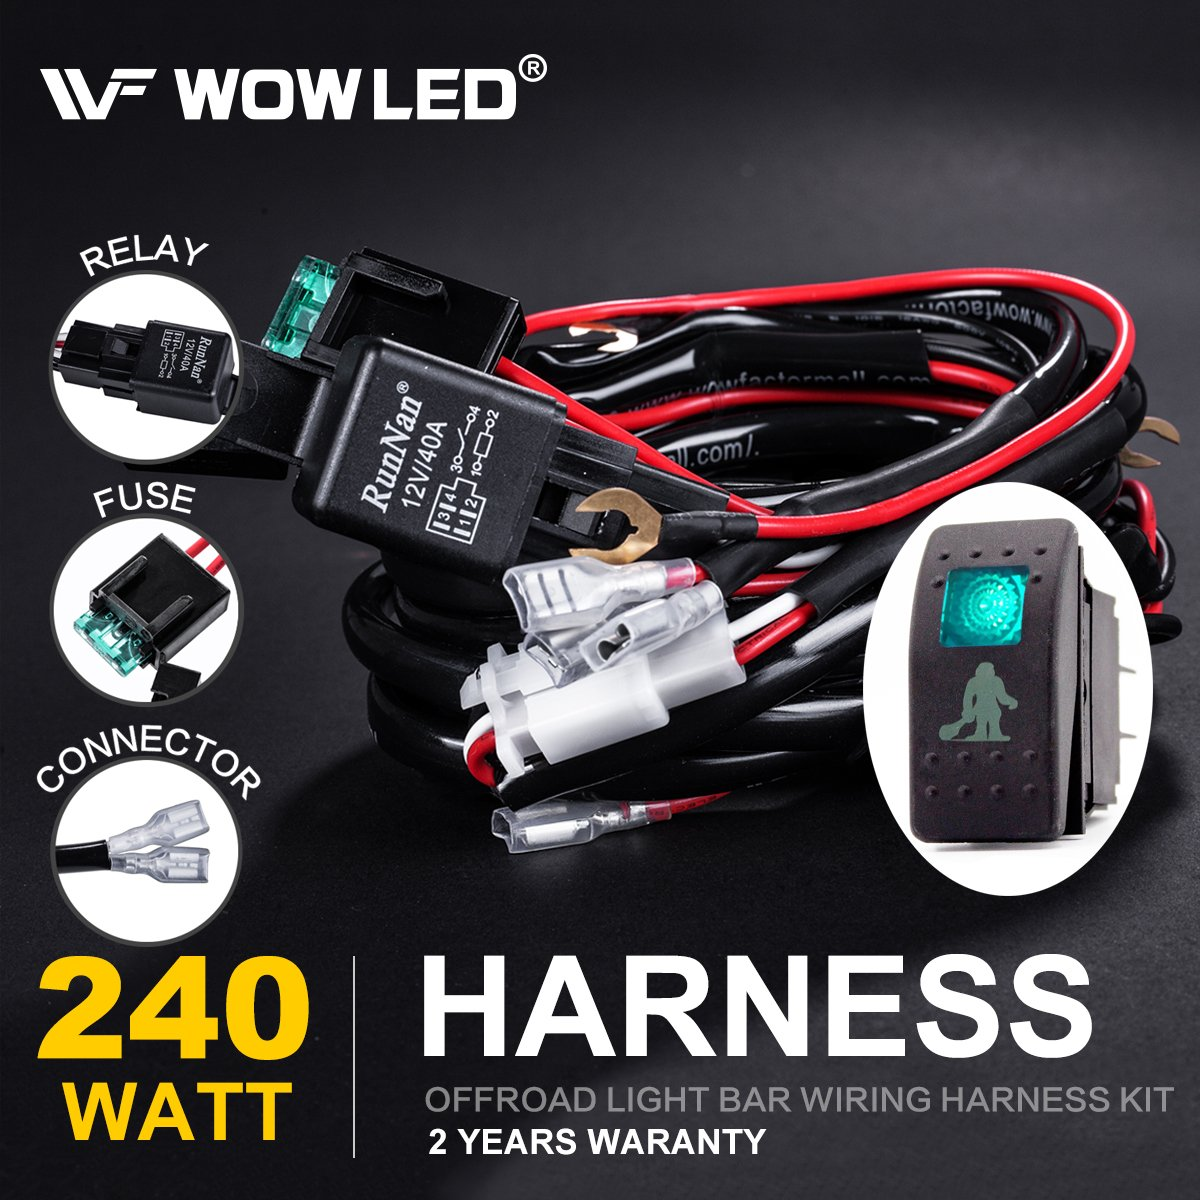 Wowled Led Light Bar Wiring Harness Kit With Sasquatch Lights 4 Pin Yares Battery Terminal Fuse Rocker Toggle Switch On Off Relay Set 12v Blue For Car Marine Road 4x4 Jeep Suv